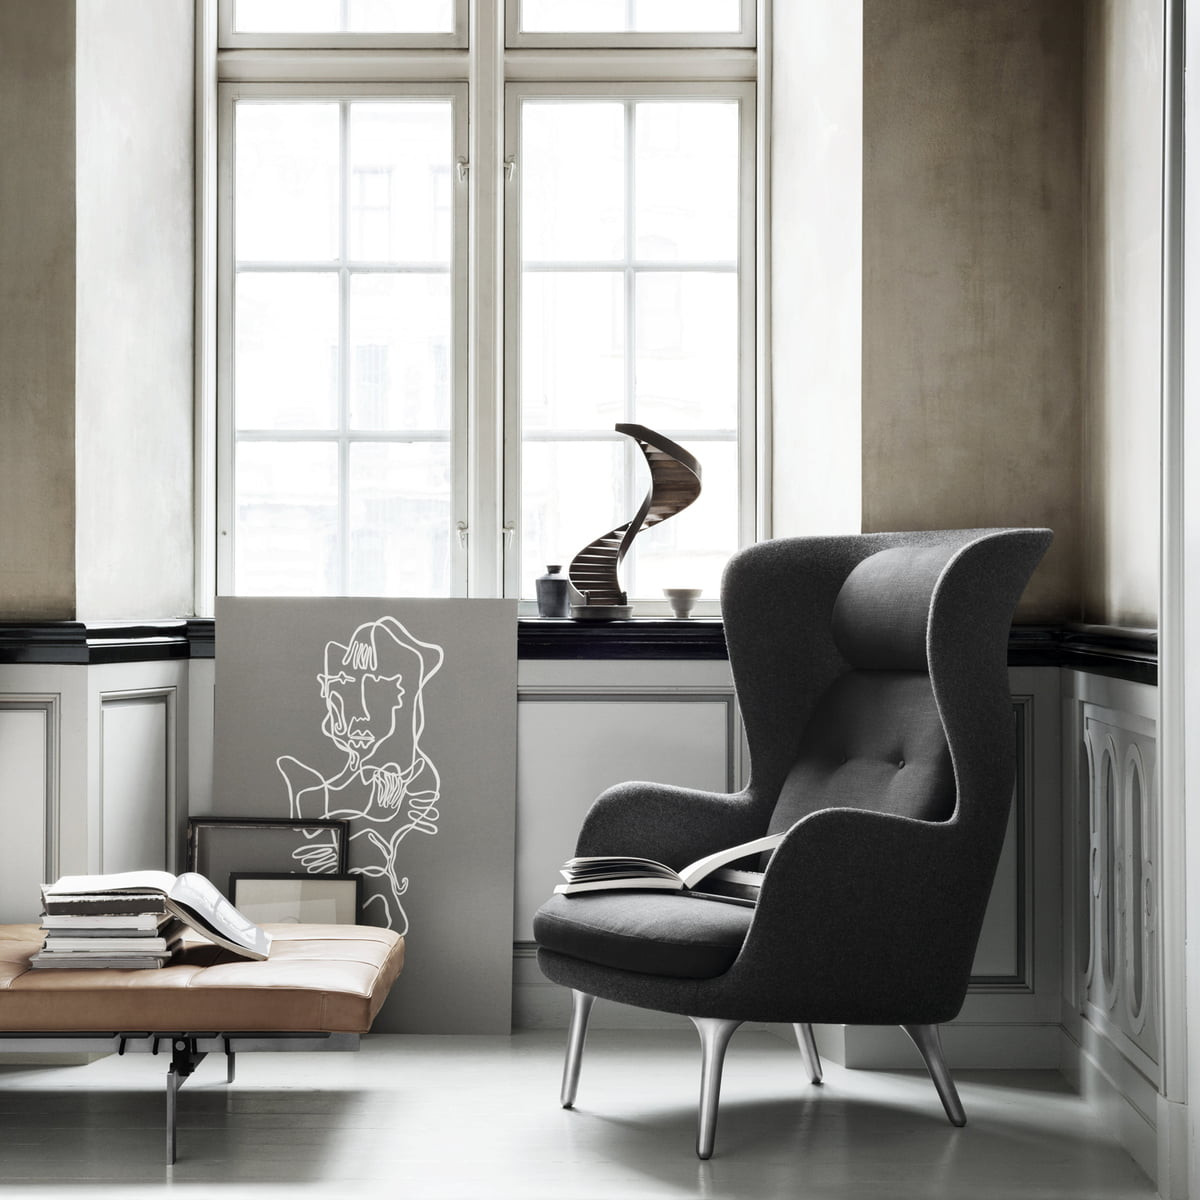 fritz hansen ro sessel im wohndesign shop. Black Bedroom Furniture Sets. Home Design Ideas